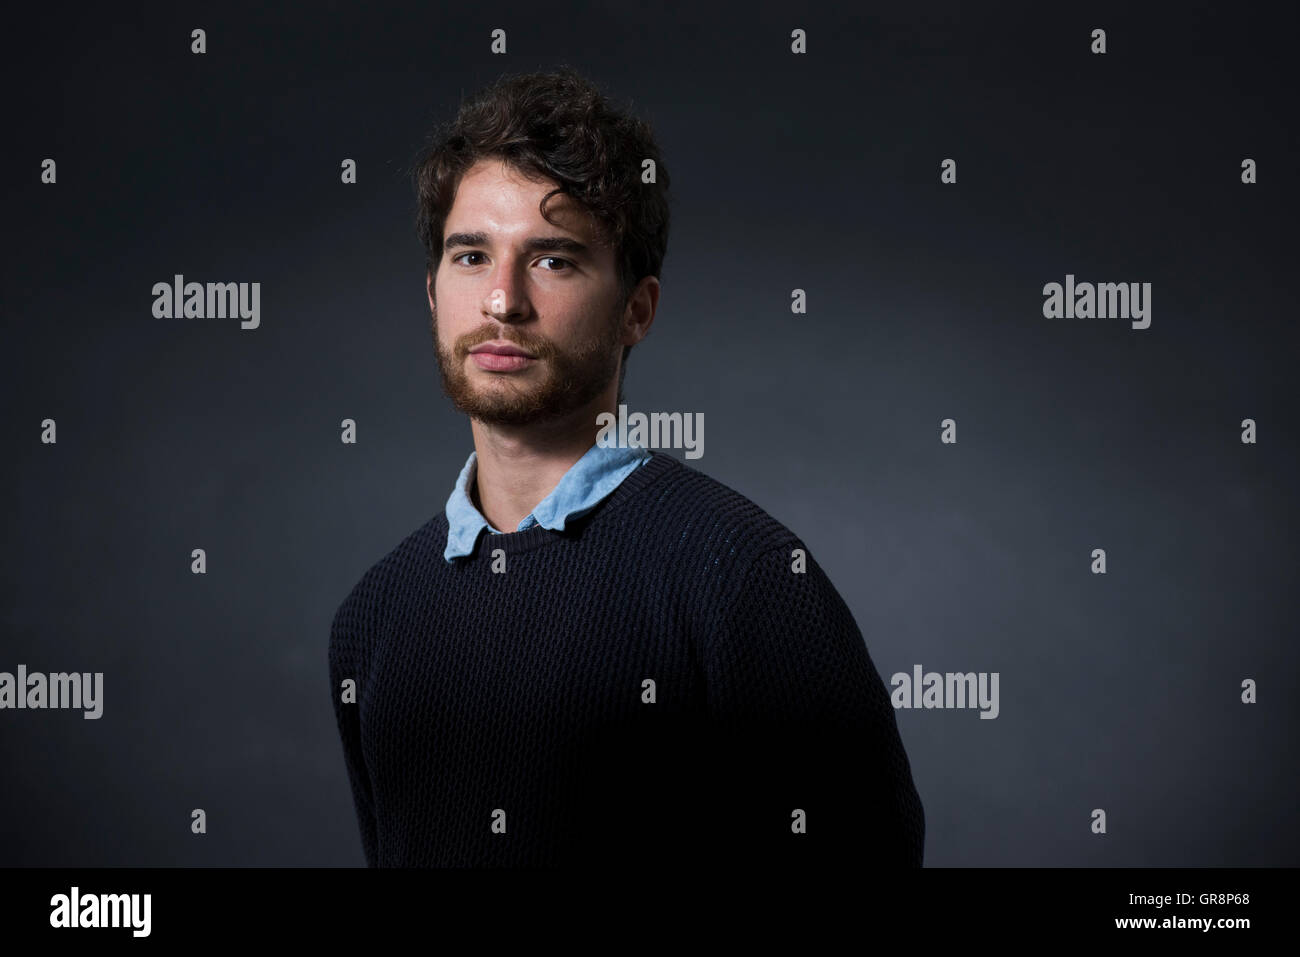 The Guardian's Migration Correspondent Patrick Kingsley. - Stock Image